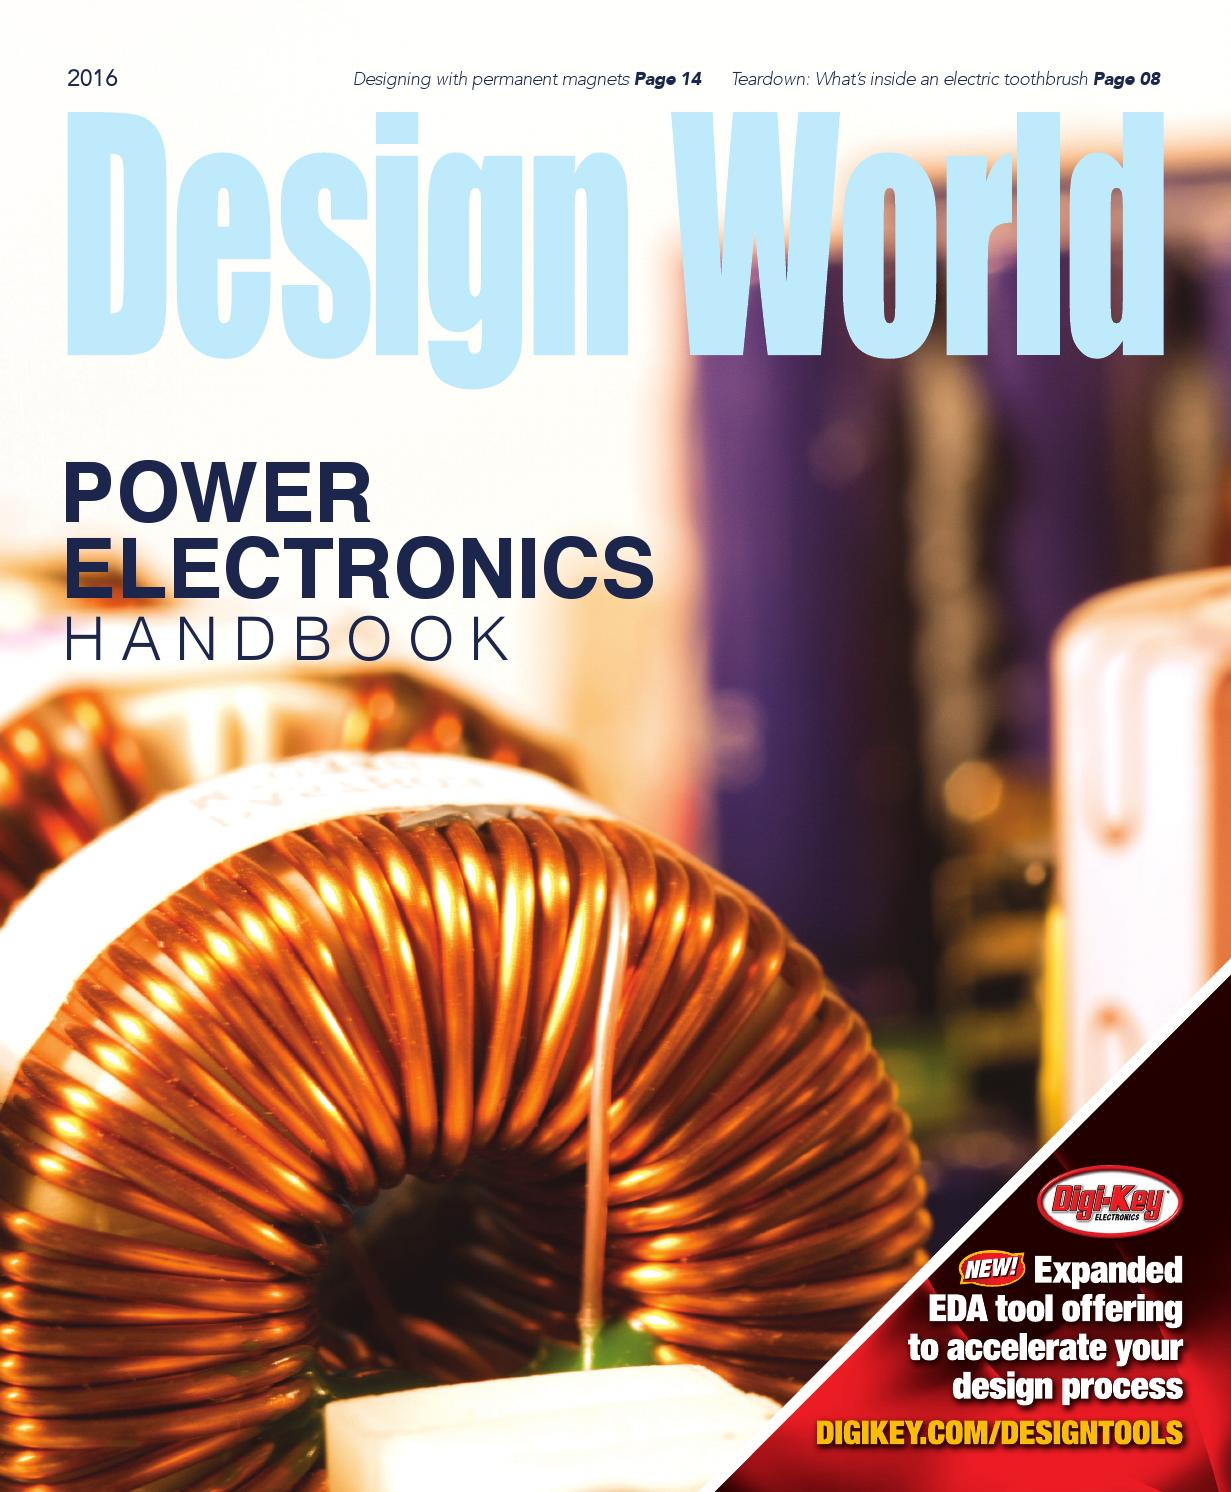 Design World Ee Network Power Electronics Handbook 2016 By Wtwh 1kw Rmsmosfetamplifier Service Manual Free Download Schematics Media Llc Issuu